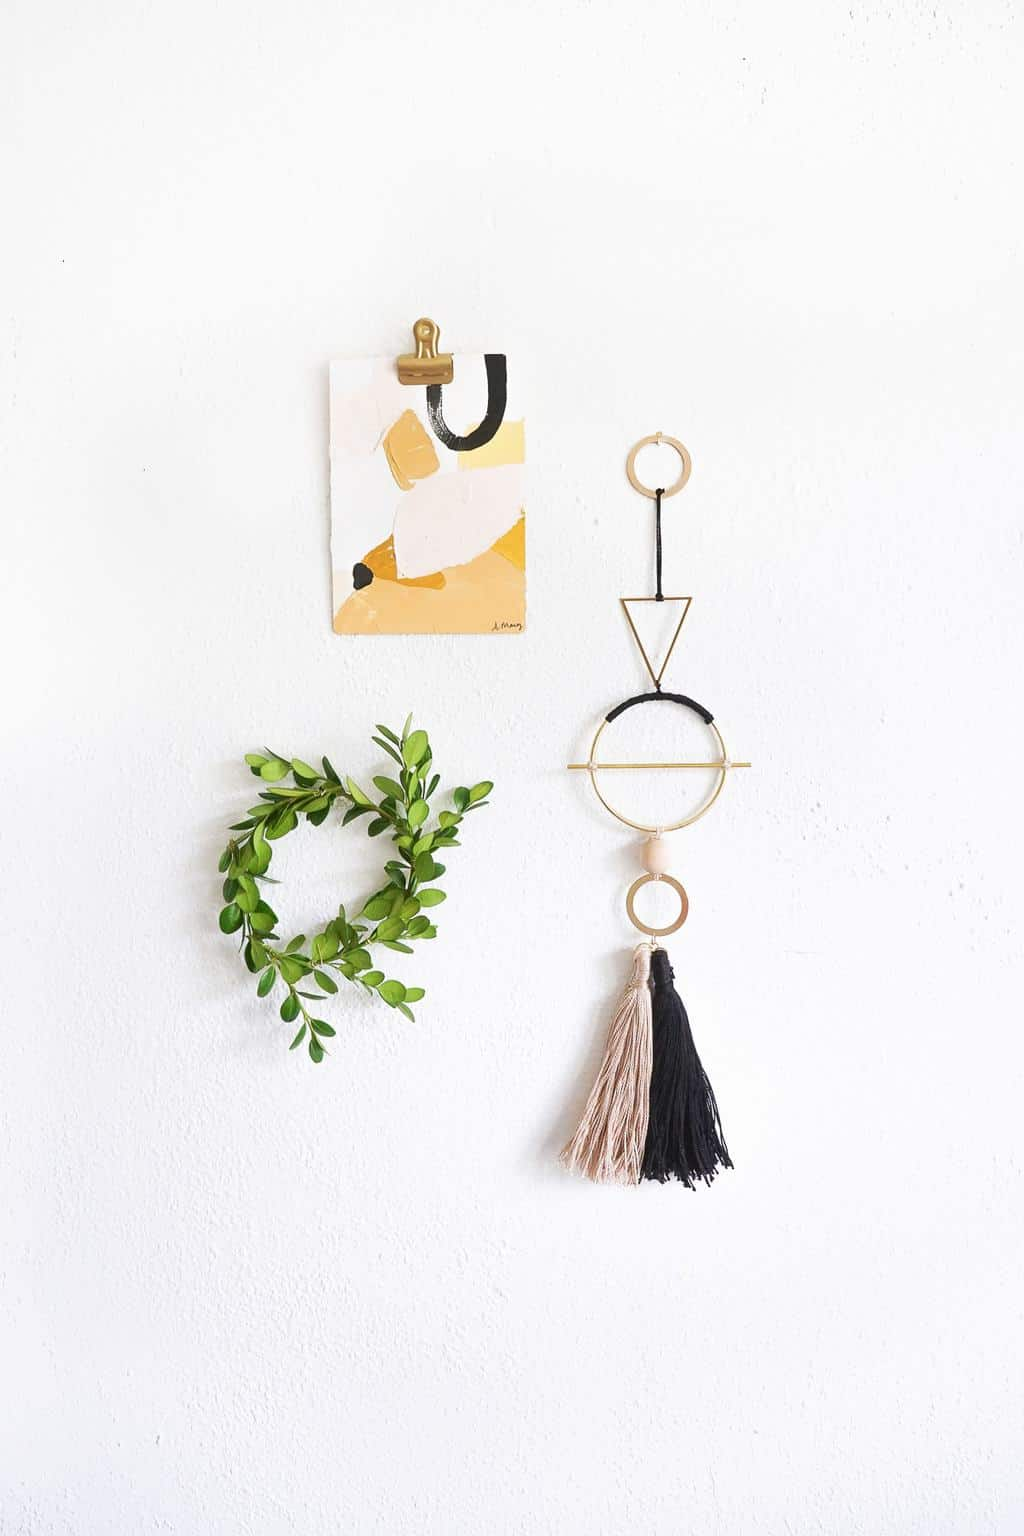 DIY Geometric Metal Wall Hang by Ashley Rose of Sugar & Cloth, a top lifestyle blog in Houston, Texas